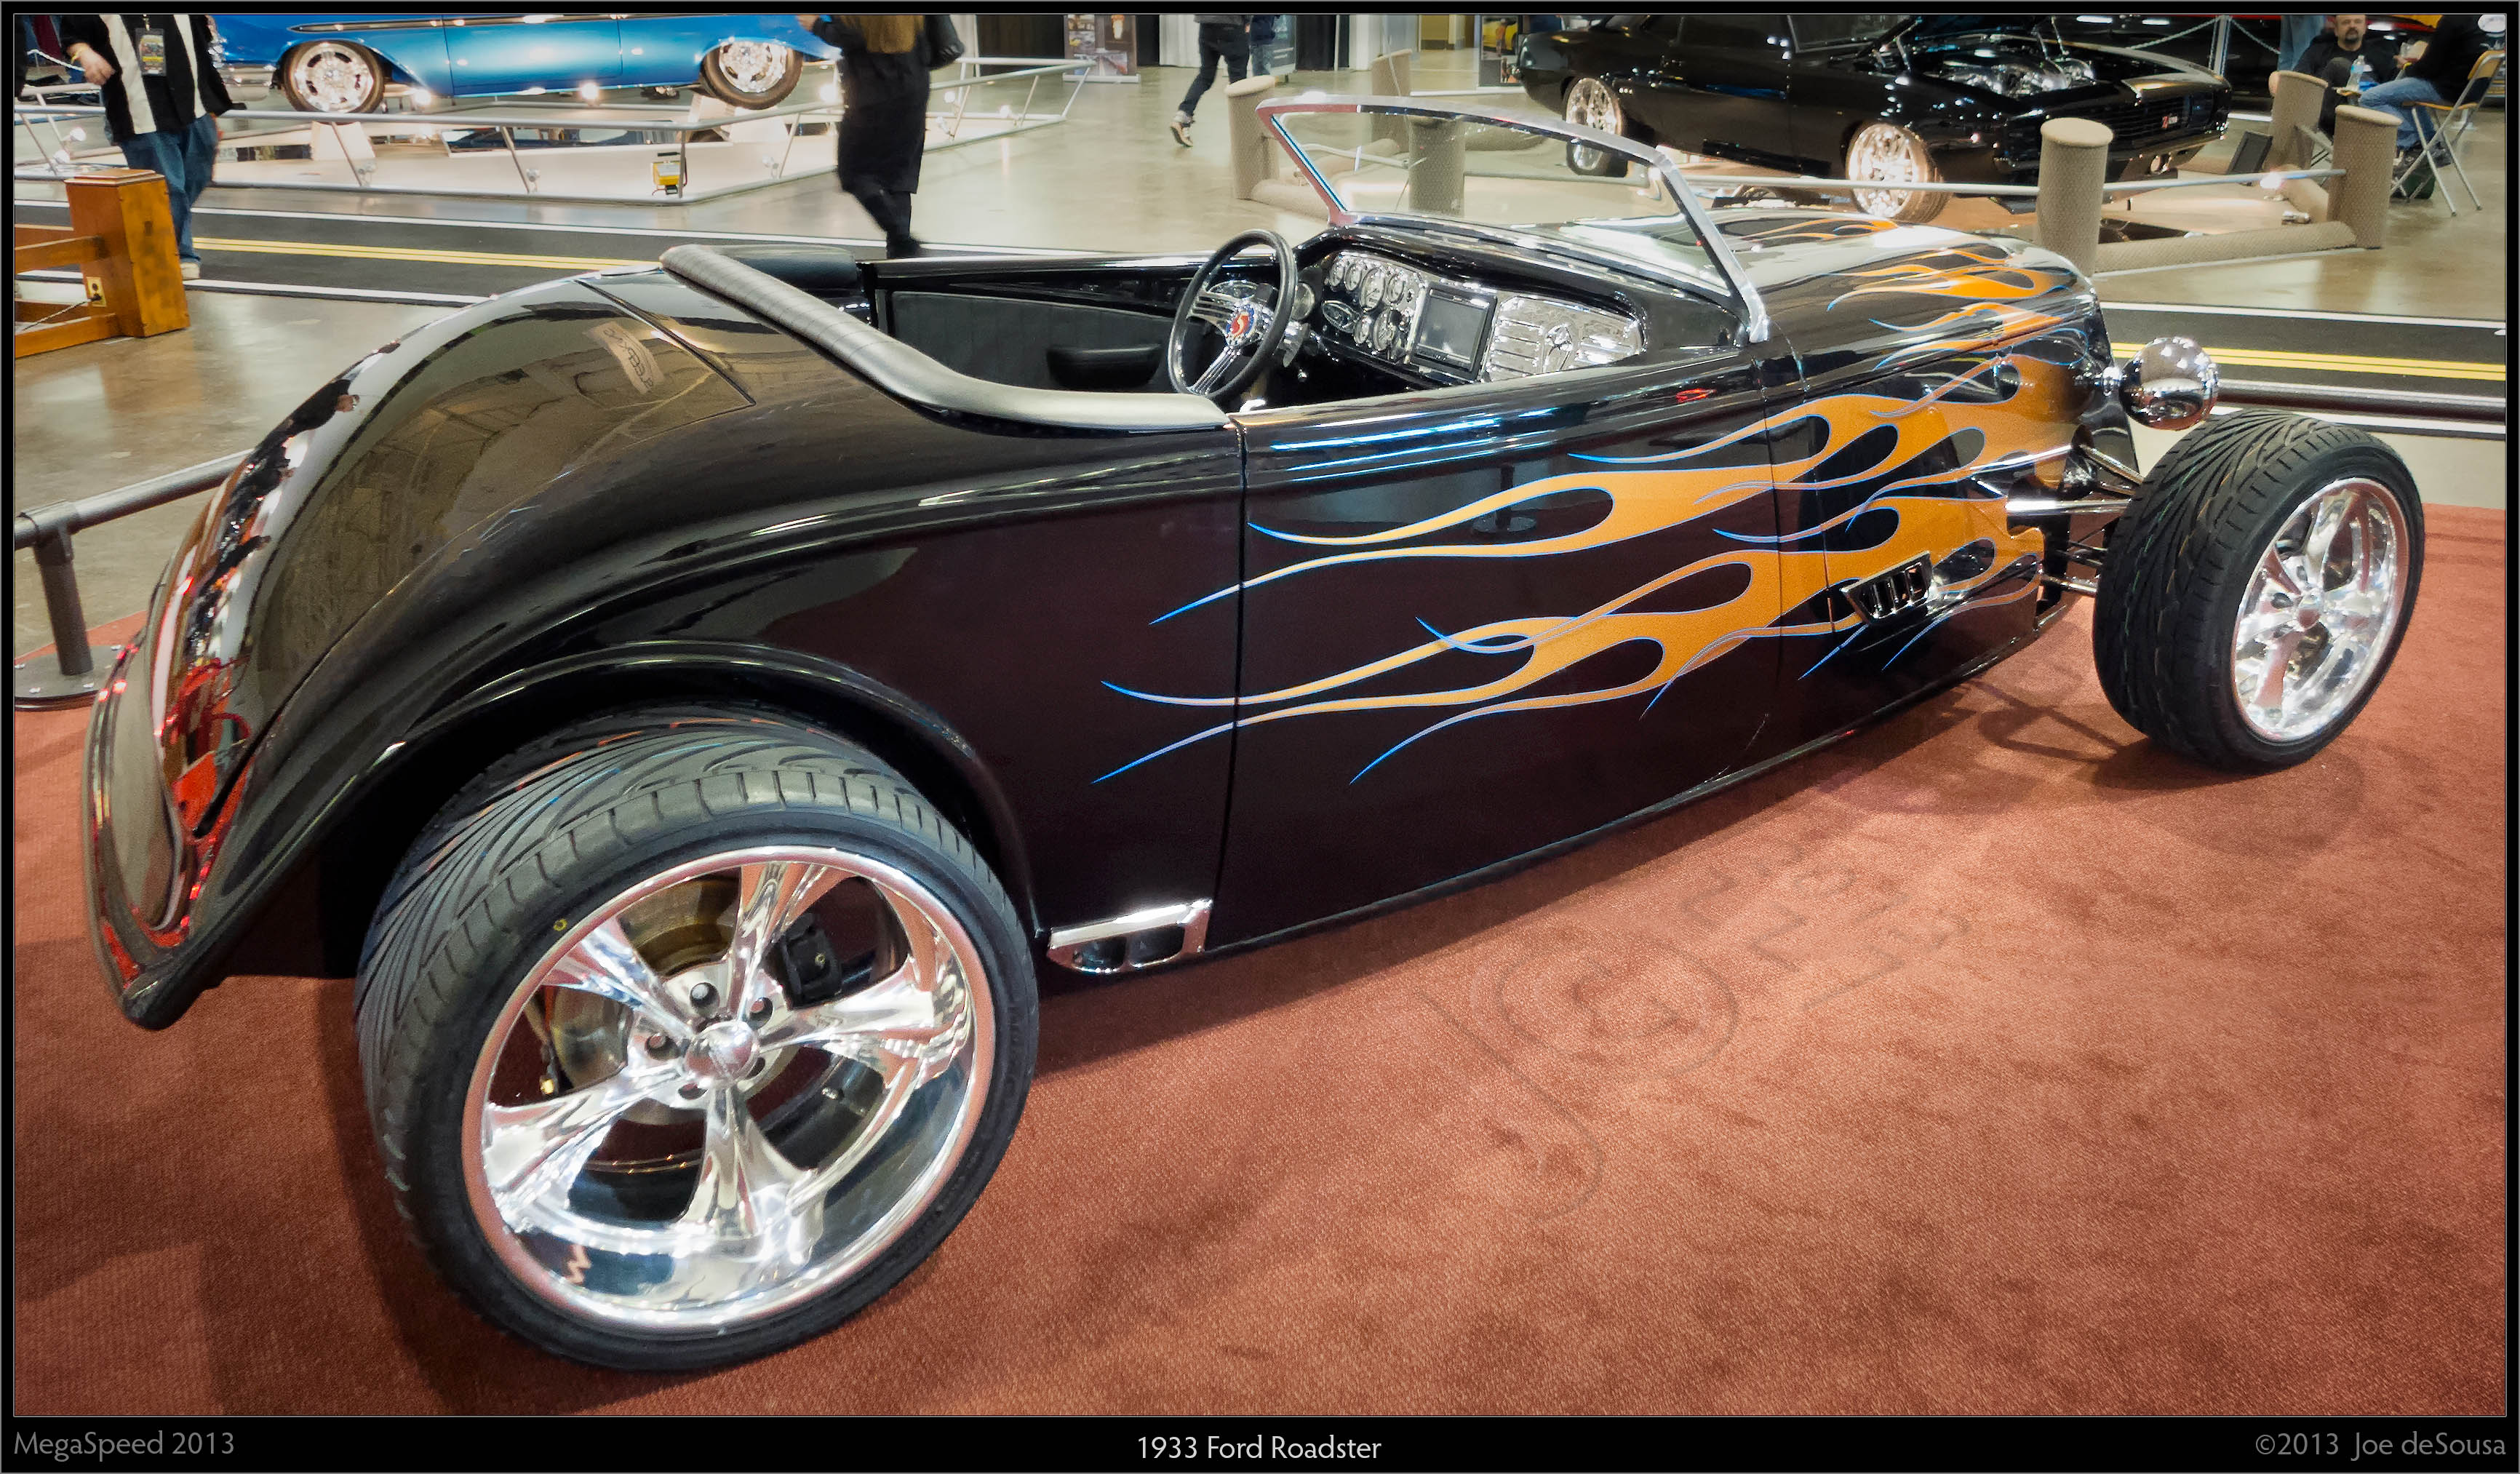 1933 Ford Roadster, 2013, Megaspeed, Show, Roadster, HQ Photo